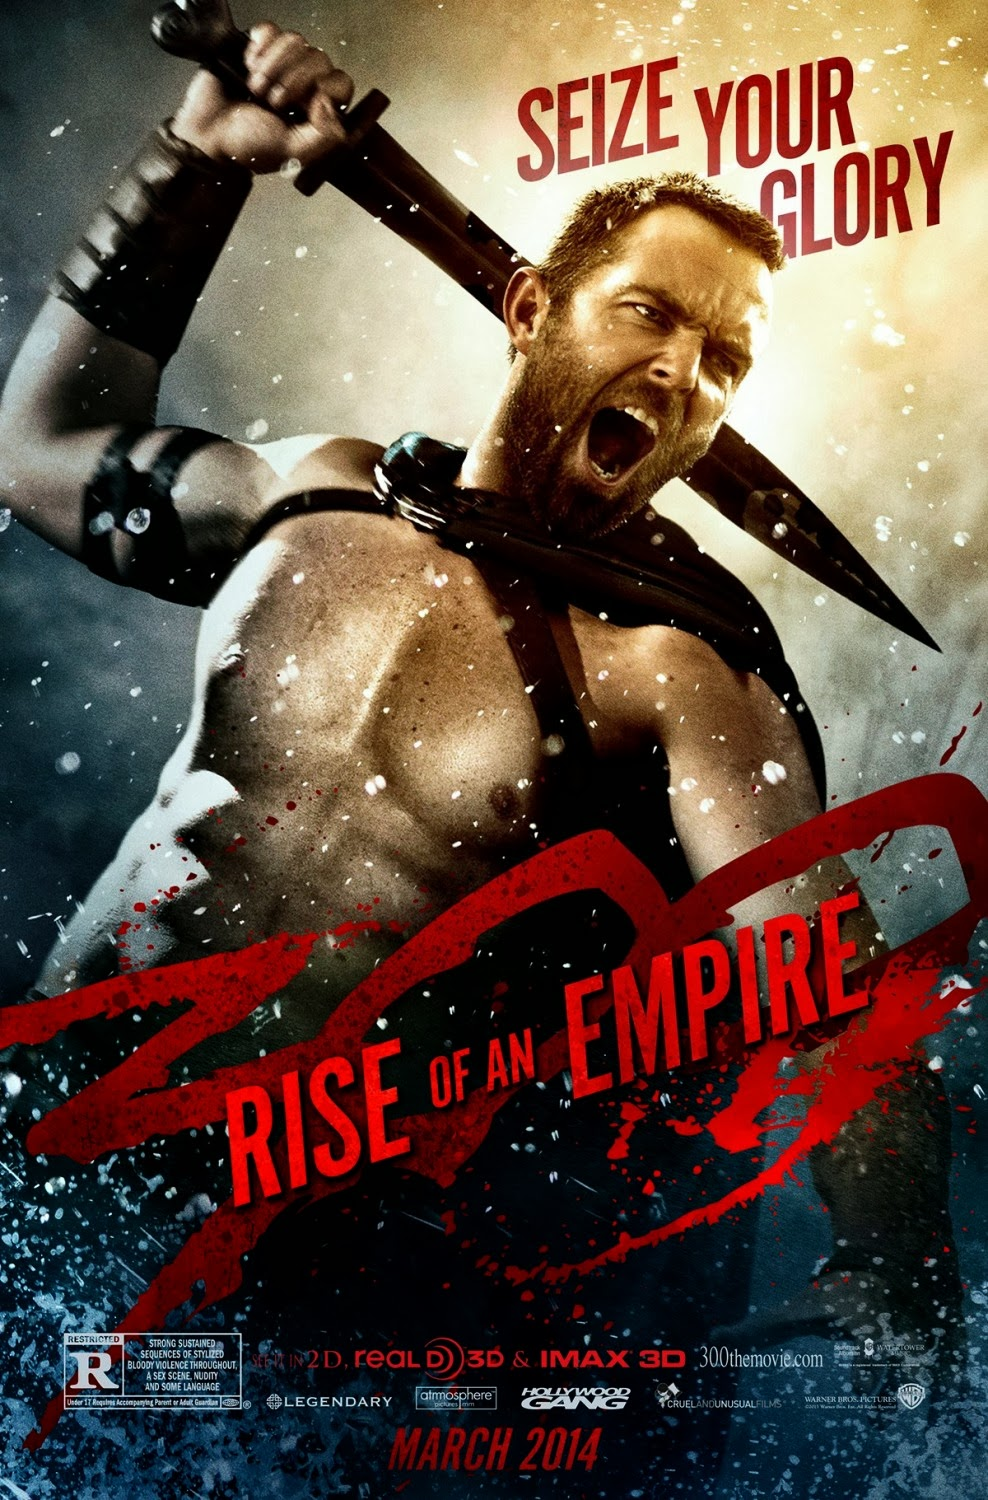 Peliculas y series de culto - Página 5 300_rise_of_an_empire_poster_12